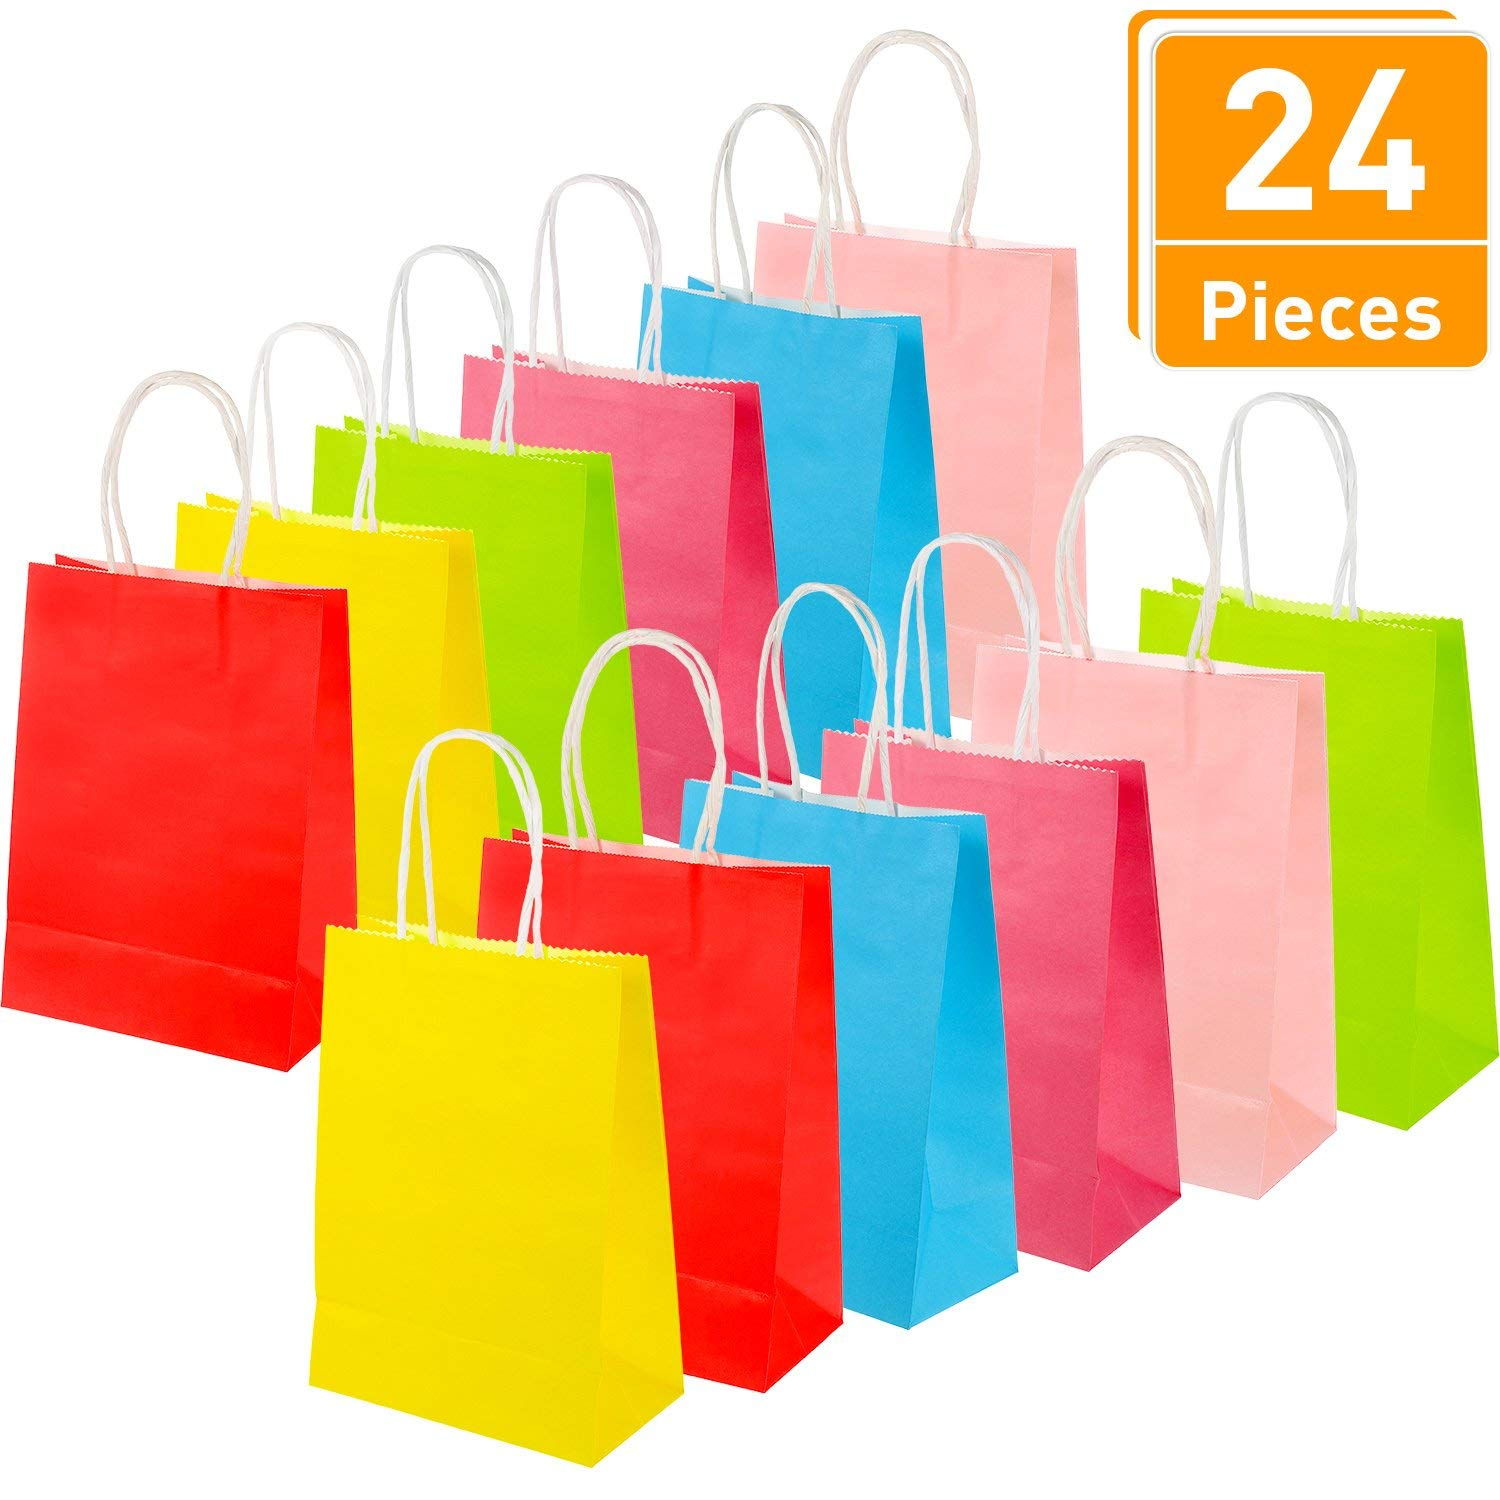 Cheap Paper Bags For Wedding Find Paper Bags For Wedding Deals On